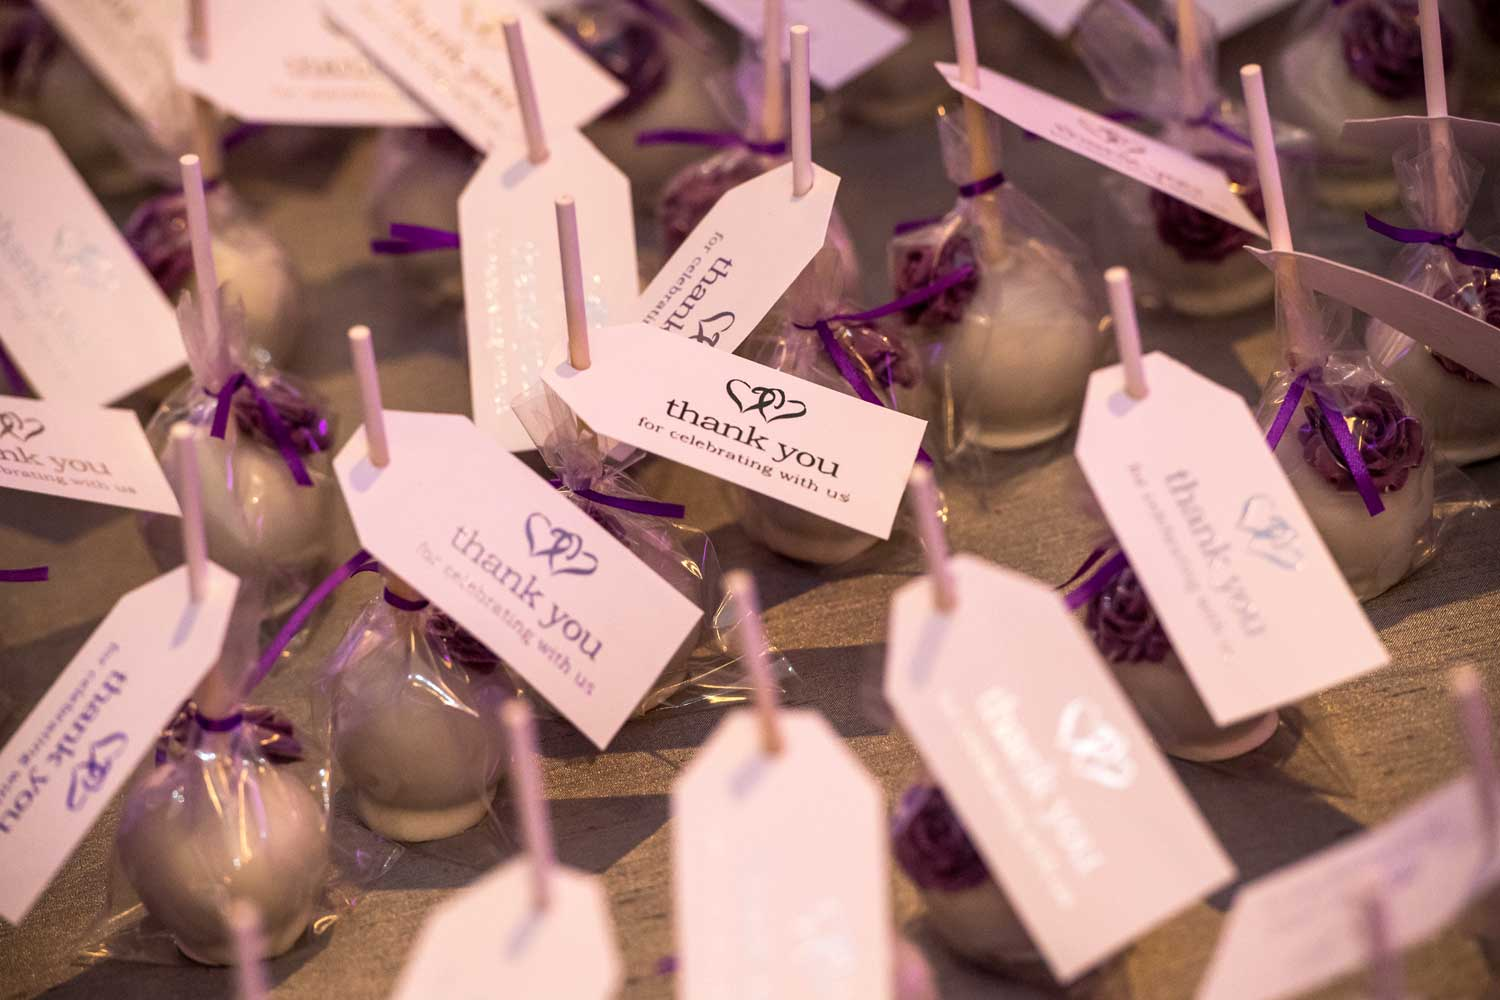 wedding favors cake pops with thank you notes